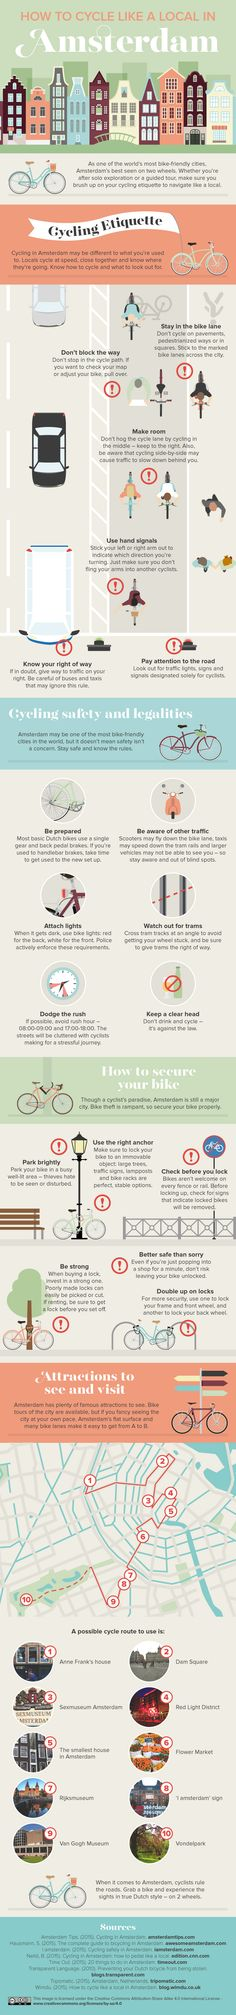 How to Cycle like a Local in Amsterdam. | Infographic | Hey Vanderbilt music students! You can study abroad at the Conservatory of Amsterdam through Vanderbilt GEO and @iesabroad